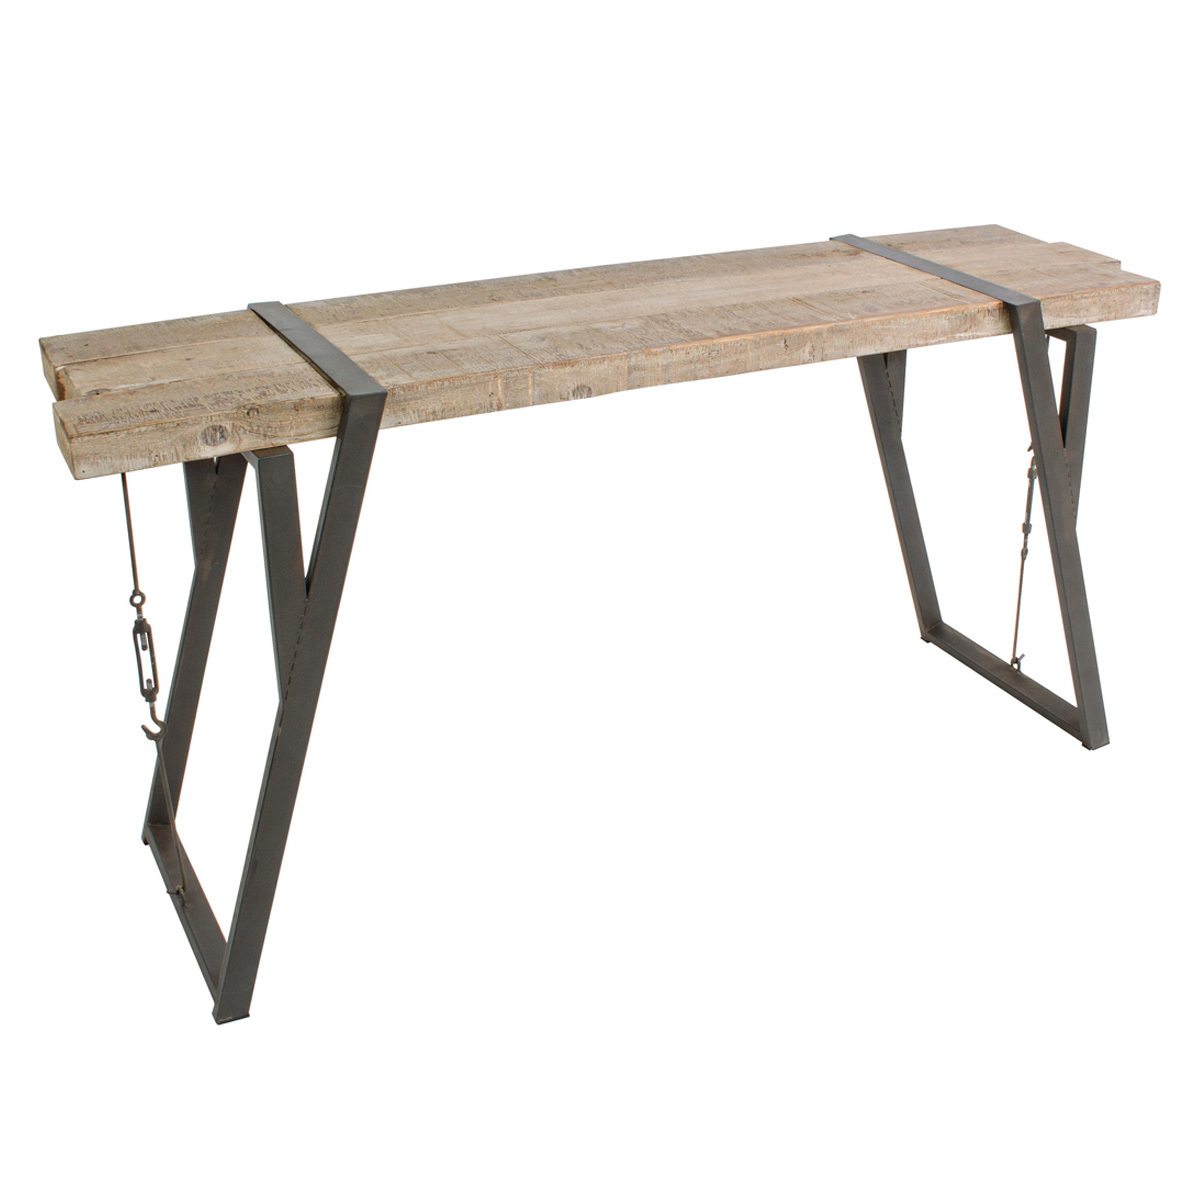 Photos 1: Bizzotto Fixed wood console l. 153 x 44 0740258